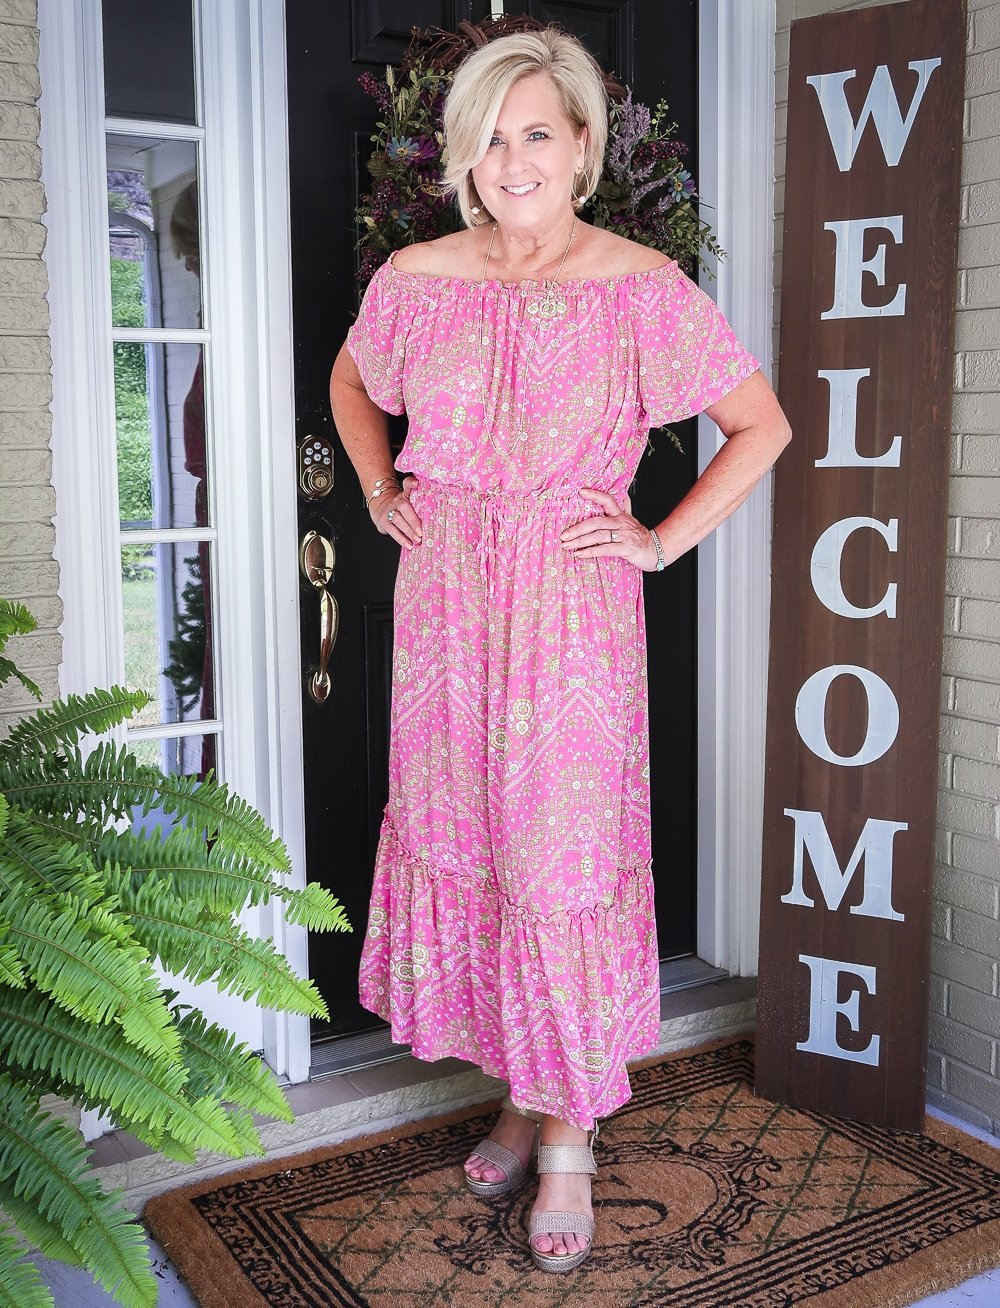 Fashion Blogger 50 Is Not Old is wearing an off the shoulder pink dress with gold jewelry and wedge espadrilles